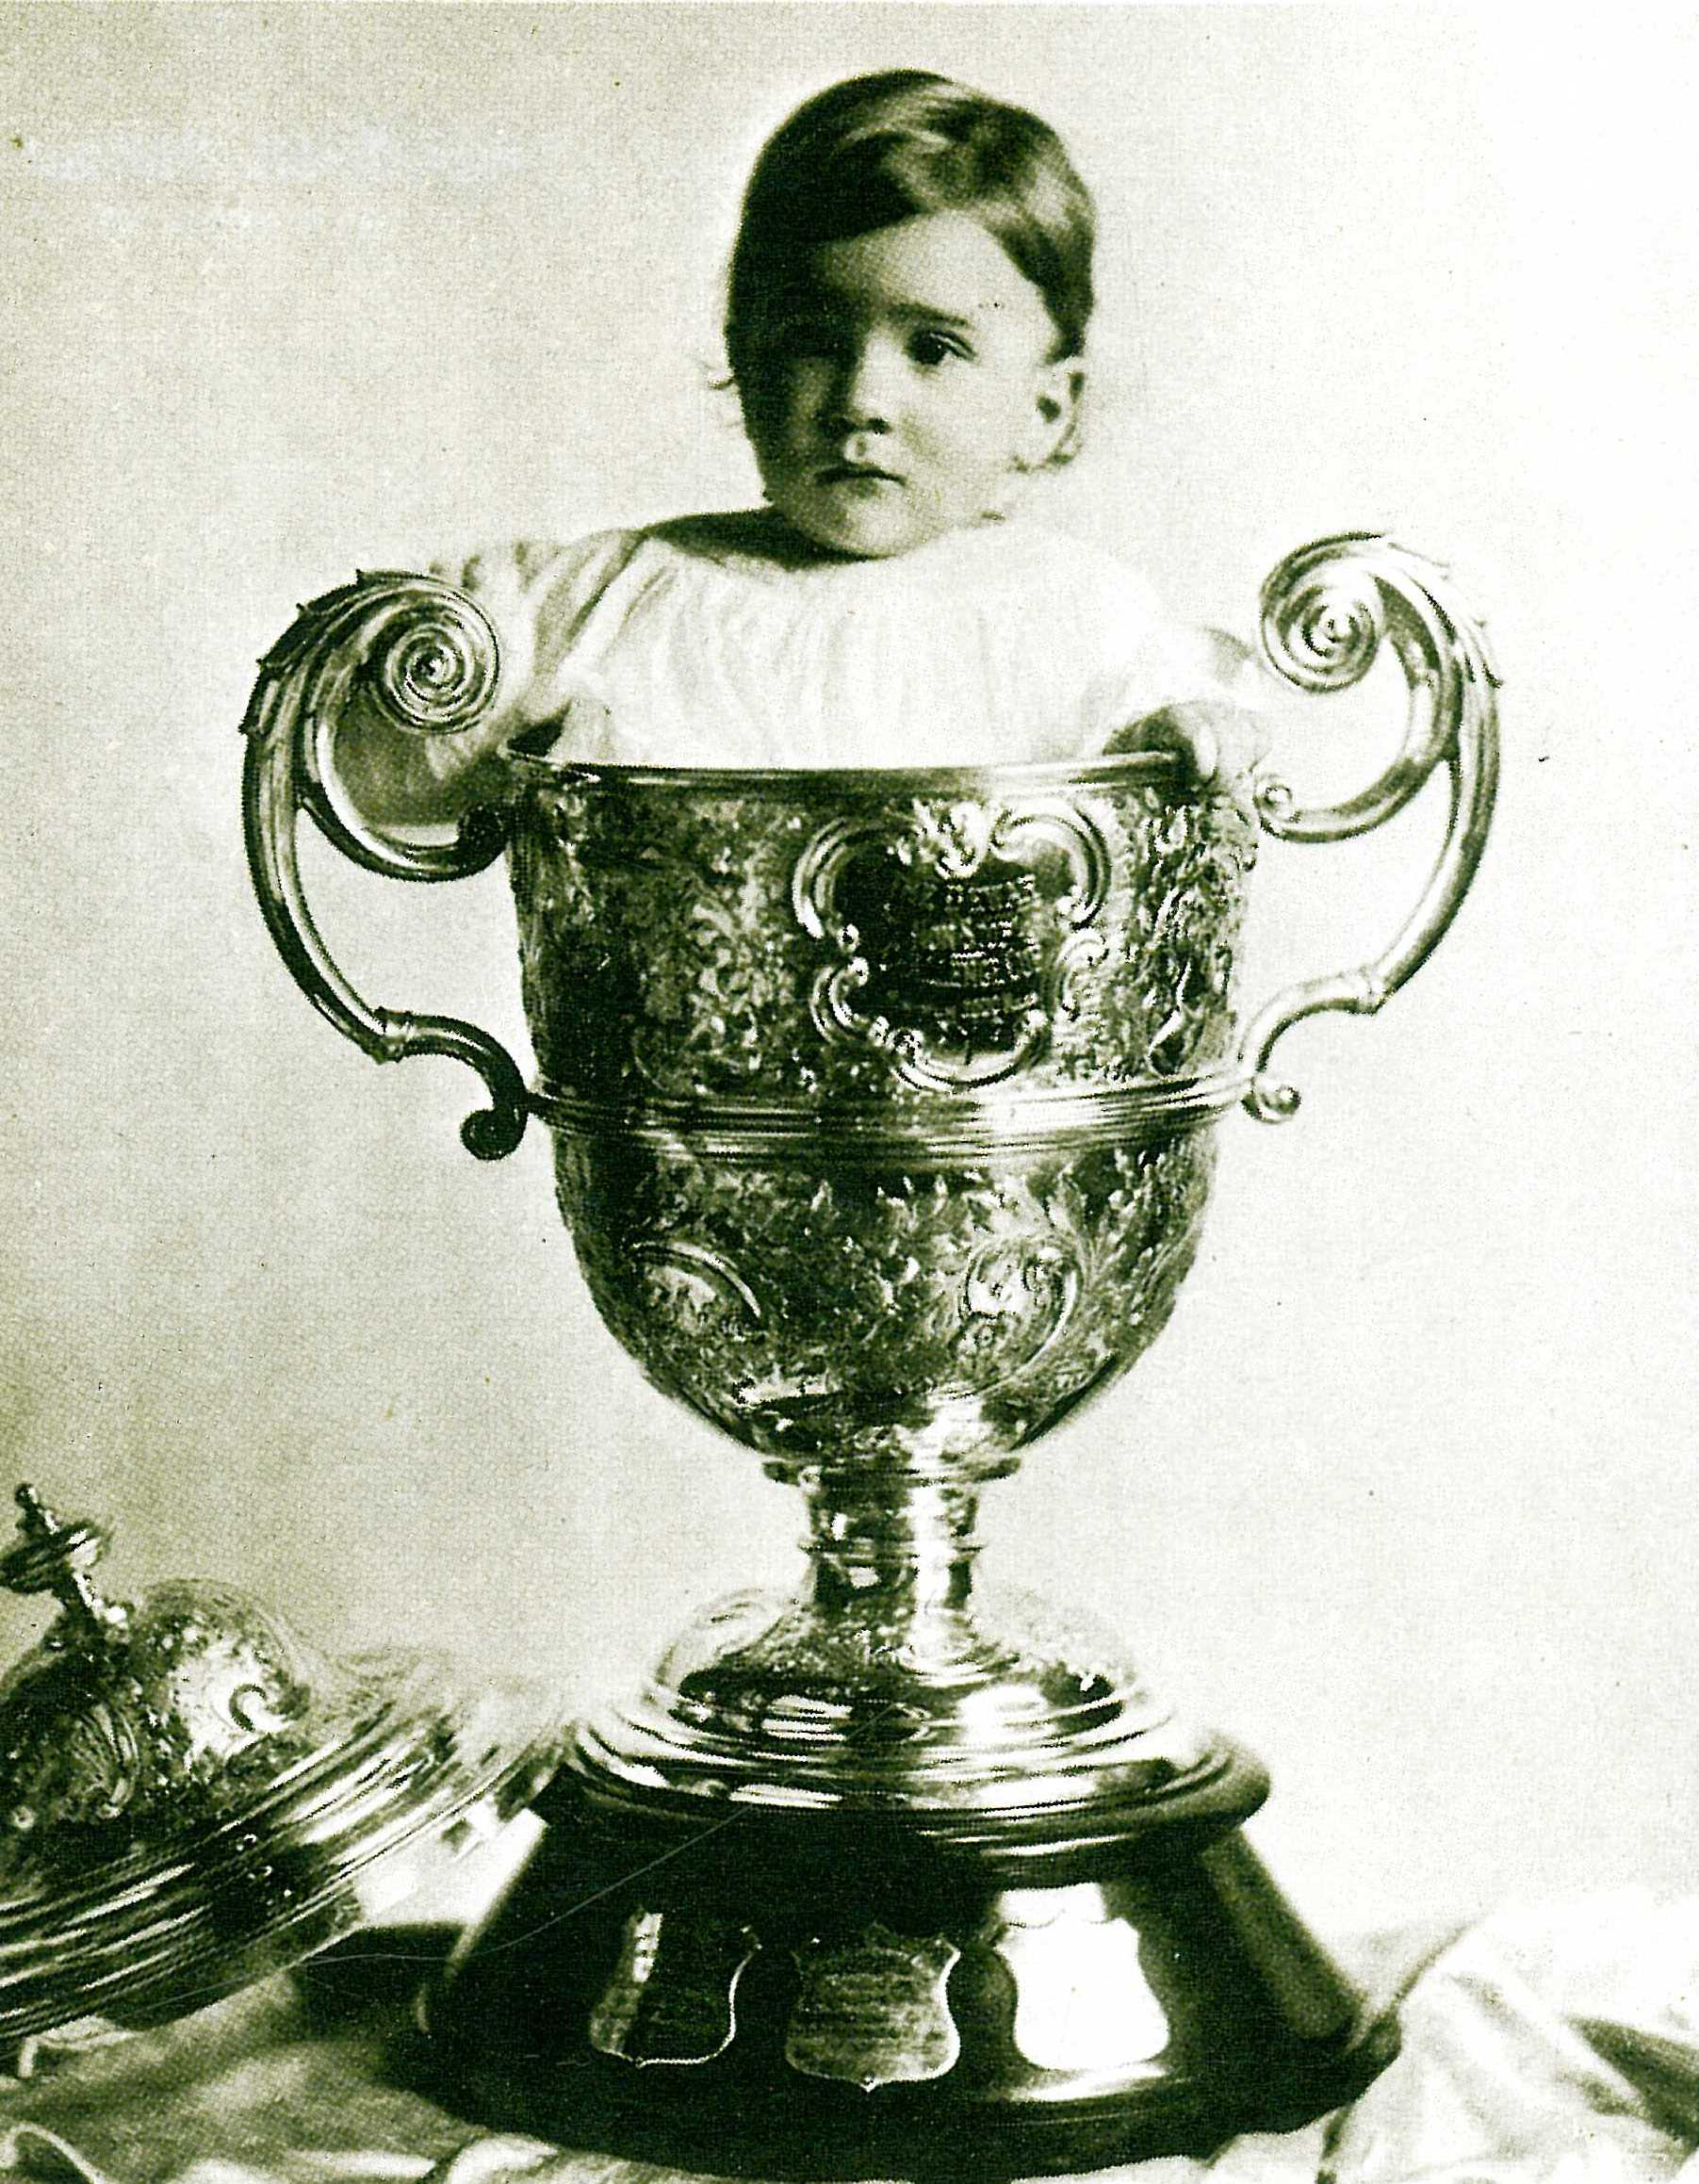 1909 - Wilfred Leland, Jr. and the Dewar Trophy